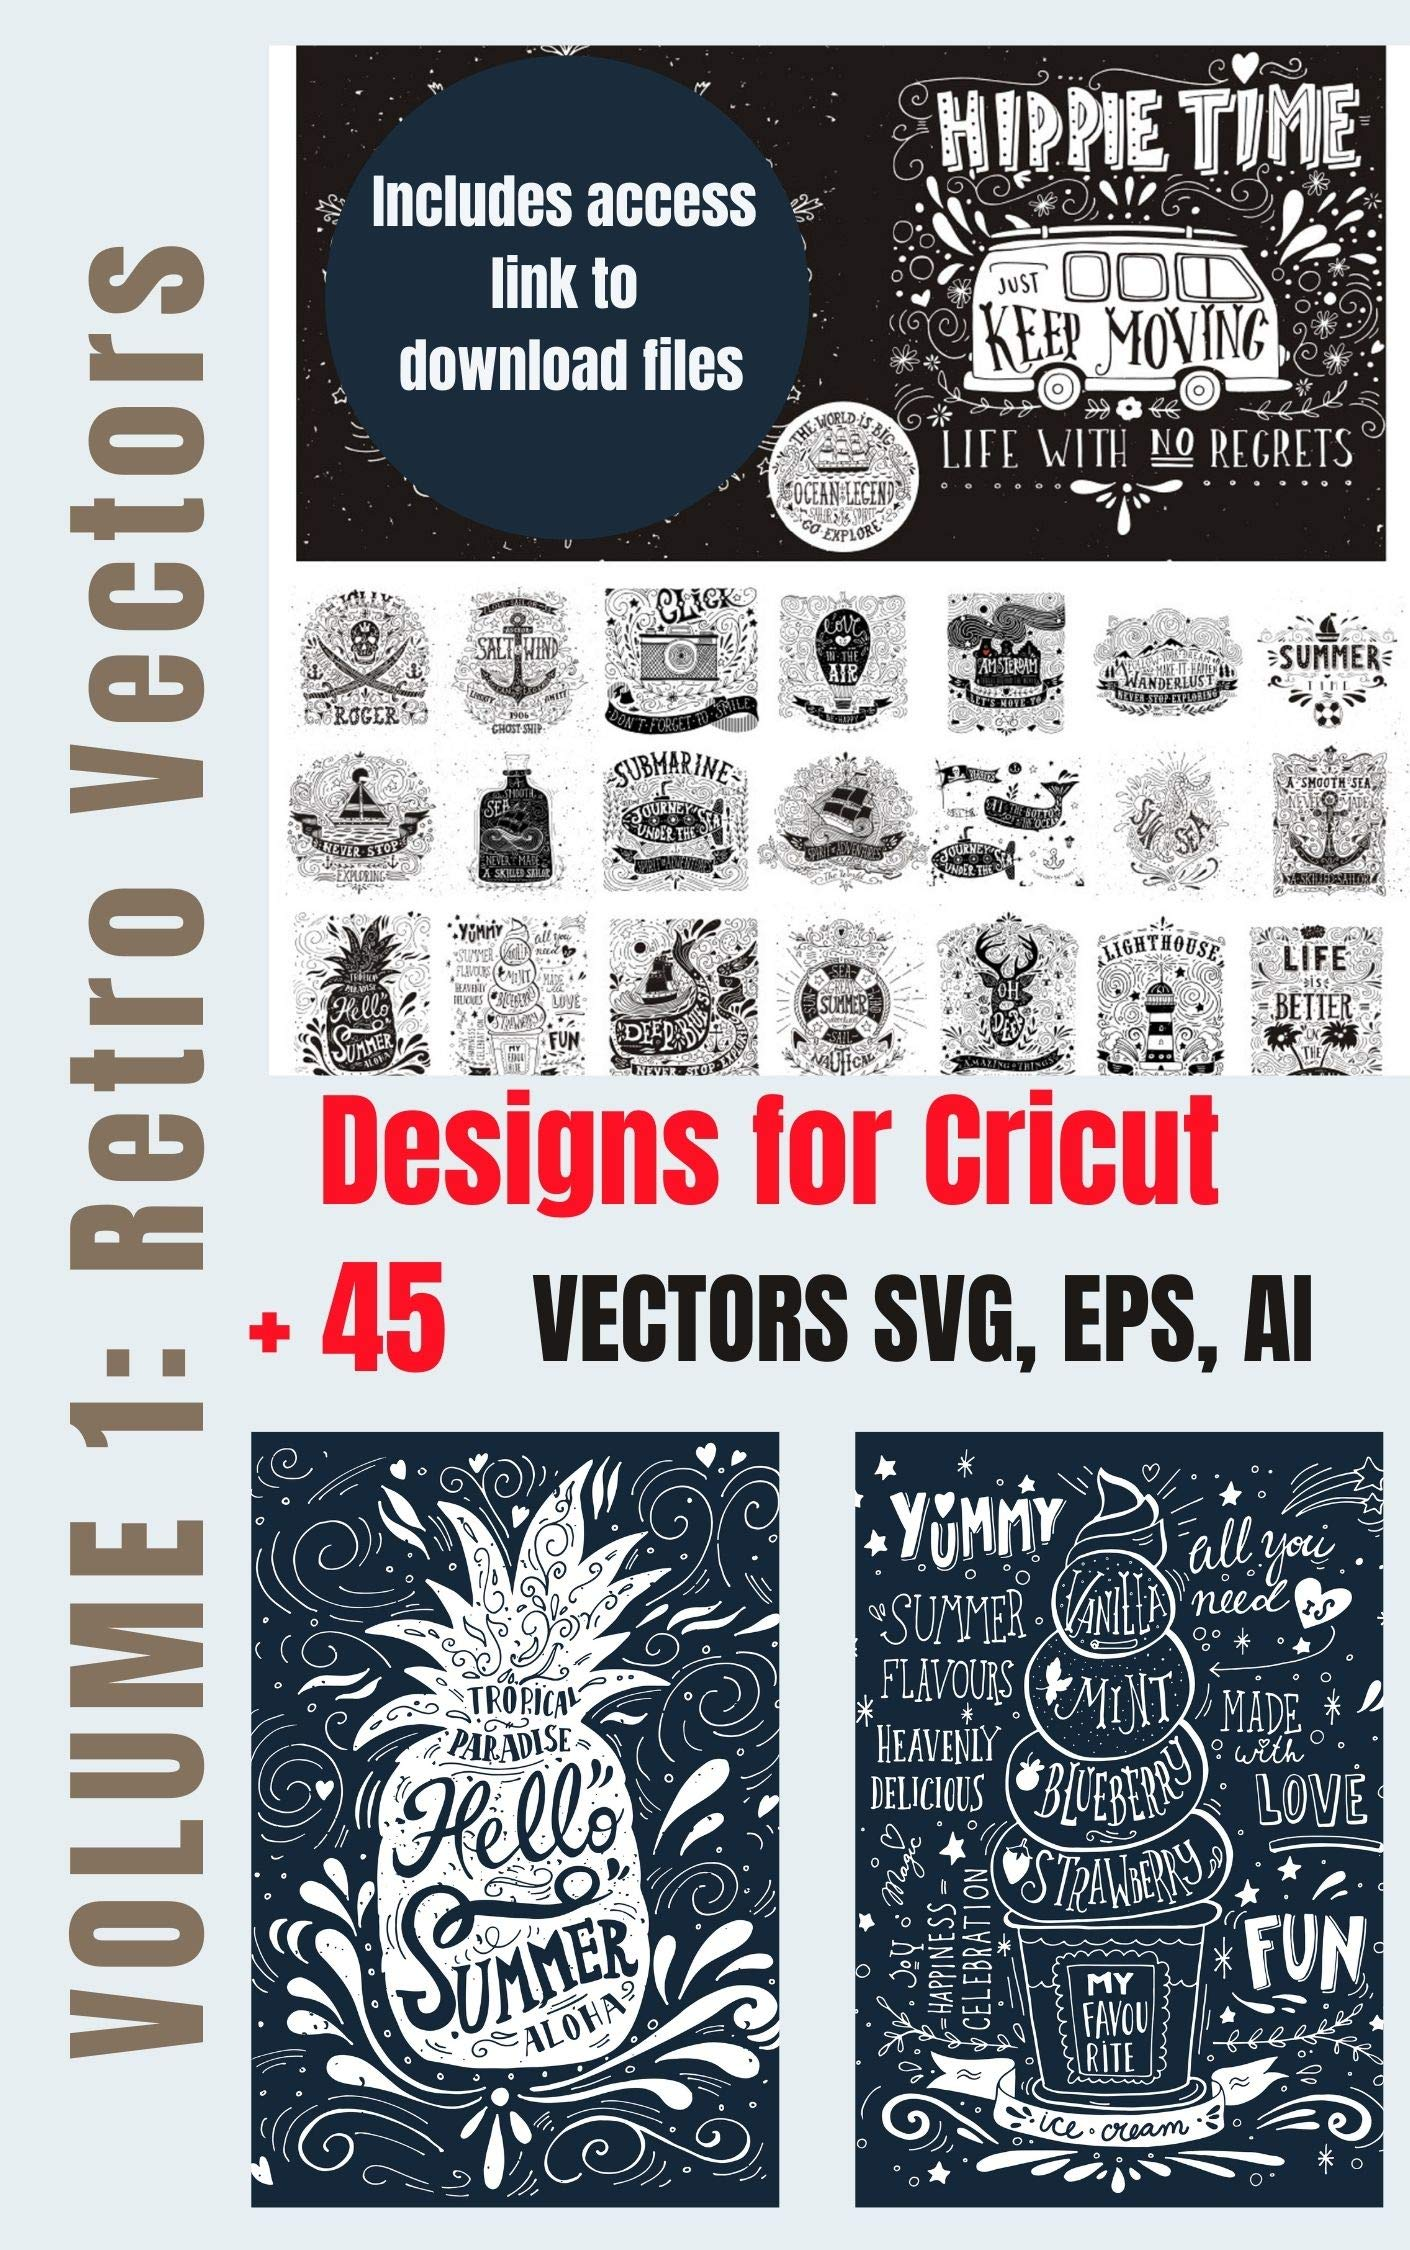 Designs for Cricut (Volume 1): Free SVG files for Cricut in Ebook format (includes free SVG download link)